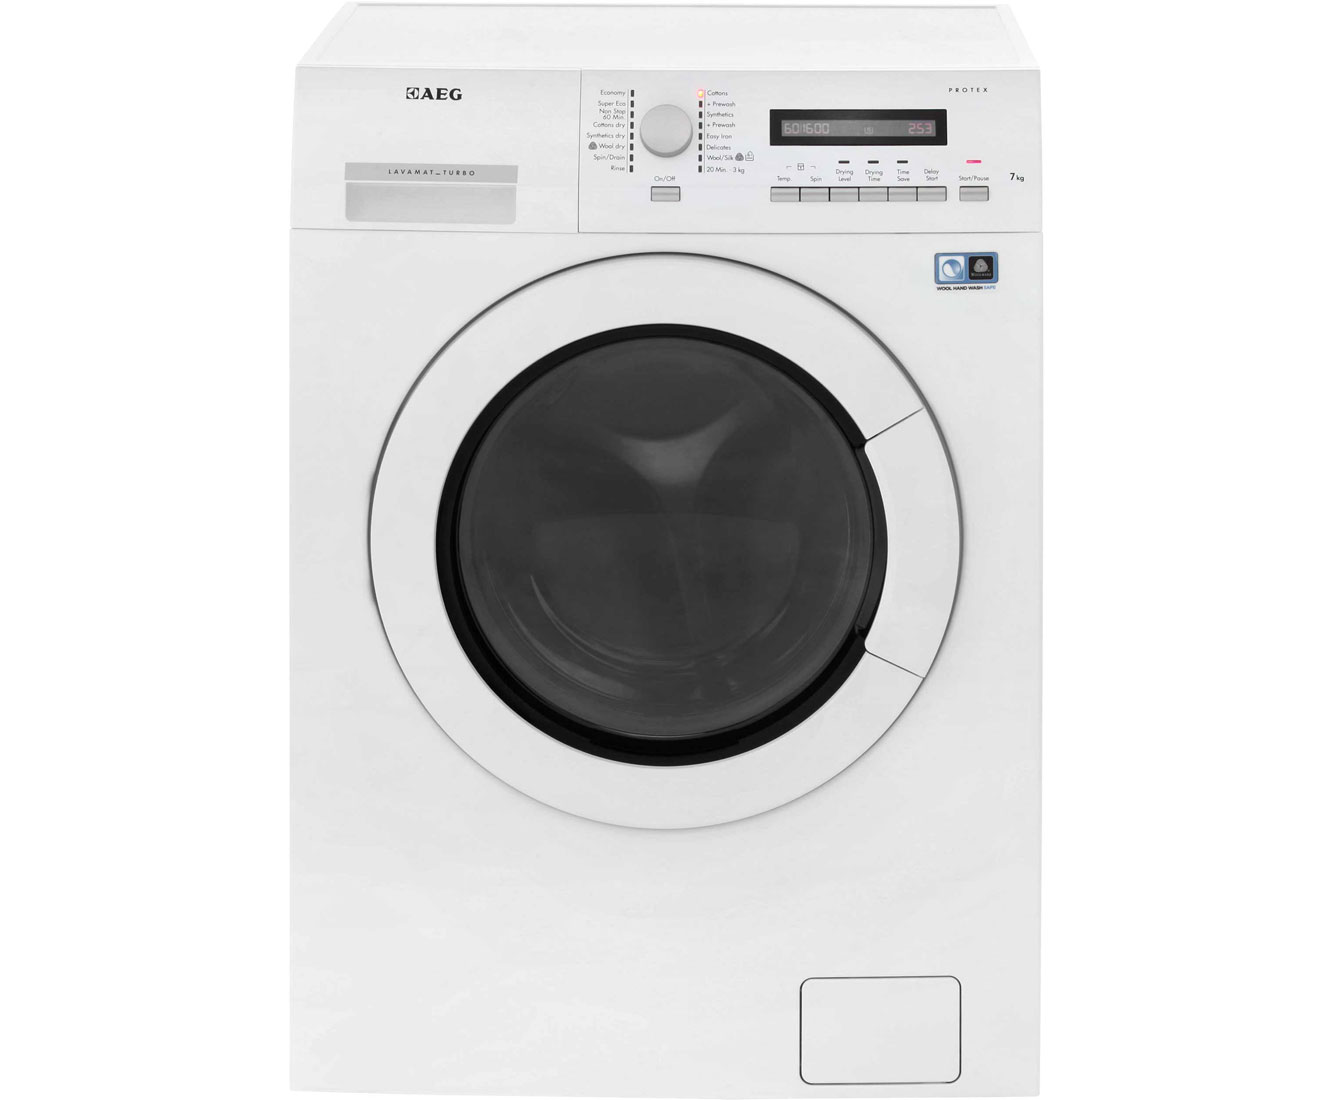 AEG Lavamat Turbo L75670WD 7Kg / 4Kg Washer Dryer with 1600 rpm - White